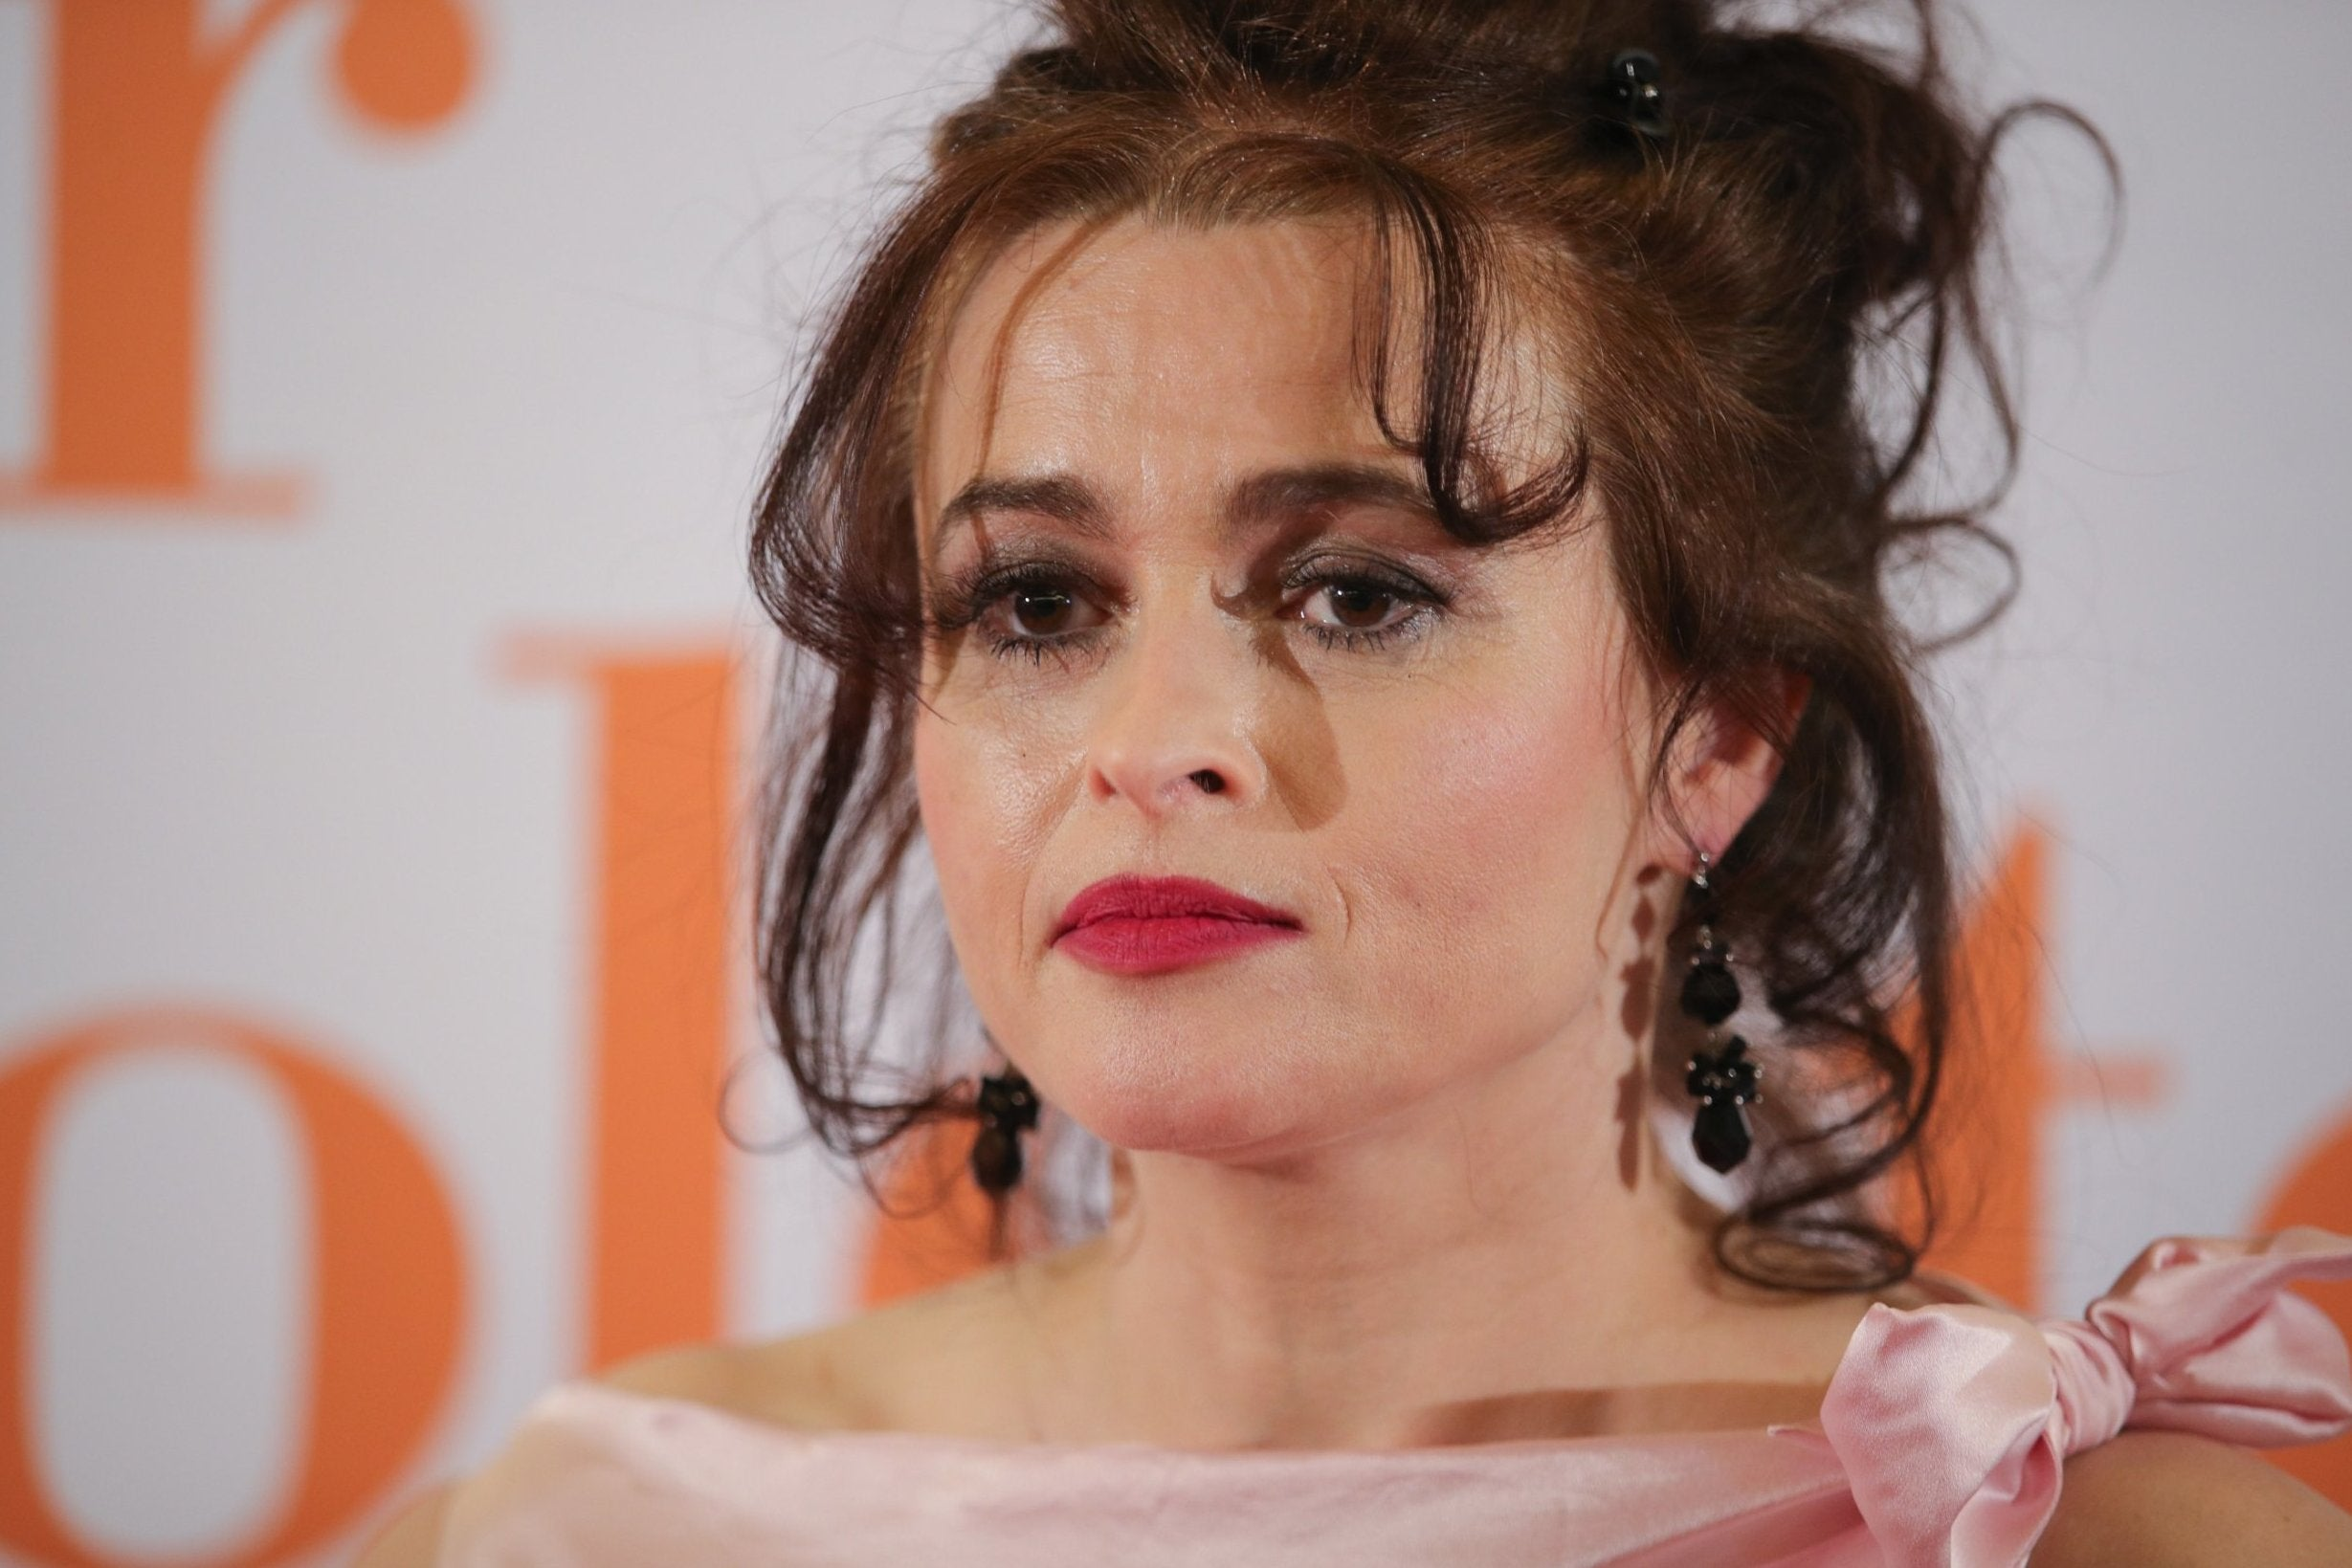 helena bonham carter younghelena bonham carter instagram, helena bonham carter harry potter, helena bonham carter фильмы, helena bonham carter young, helena bonham carter 2019, helena bonham carter fight club, helena bonham carter vk, helena bonham carter movies, helena bonham carter height, helena bonham carter biography, helena bonham carter insta, helena bonham carter films, helena bonham carter photo, helena bonham carter boyfriend, helena bonham carter wiki, helena bonham carter gif, helena bonham carter gallery, helena bonham carter big fish, helena bonham carter filmography, helena bonham carter sweeney todd